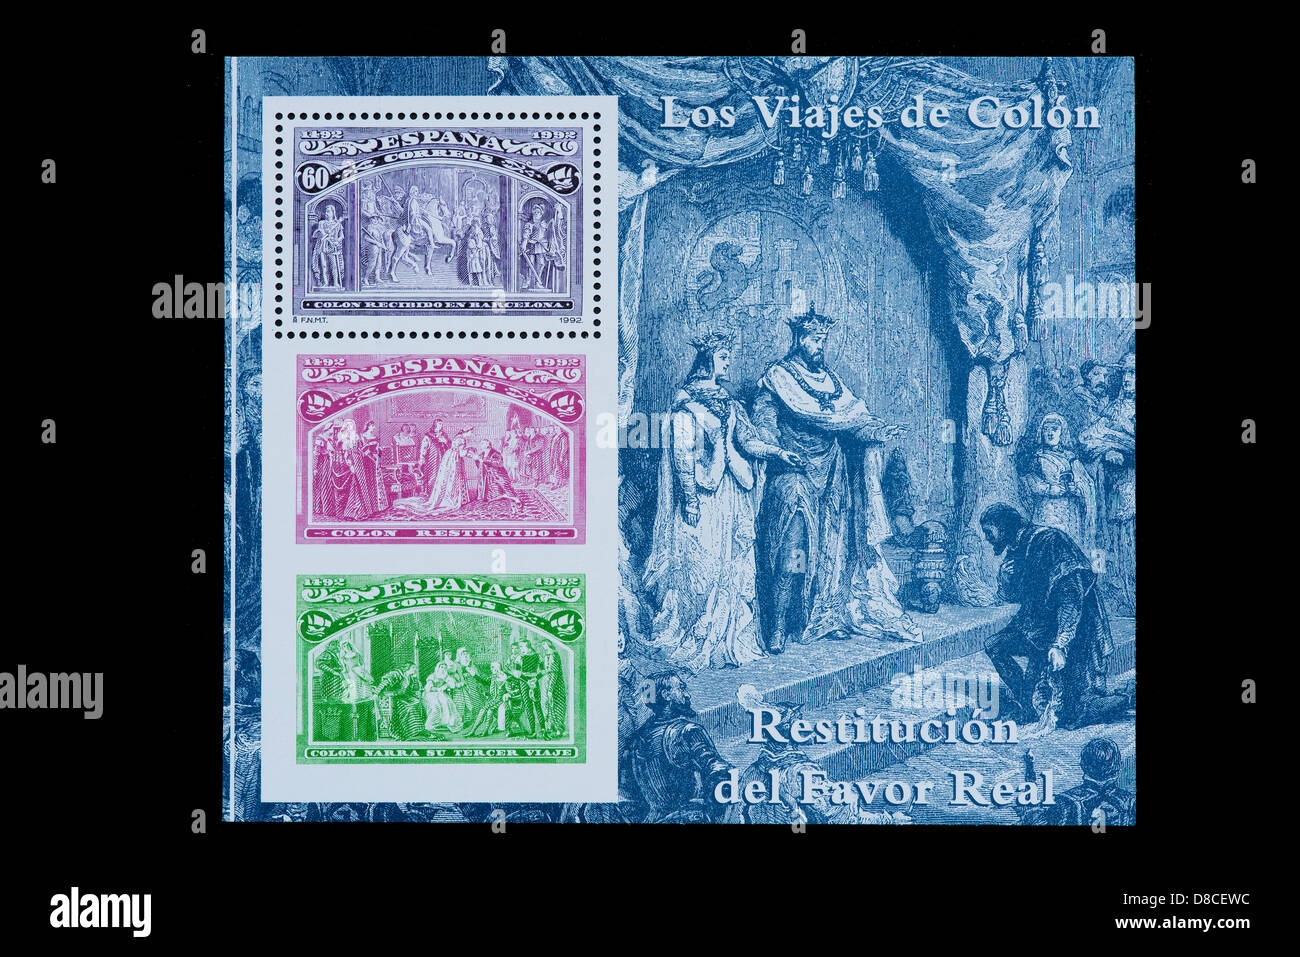 Christopher columbus and the discovery of America in a spanish stamp sheet Stock Photo